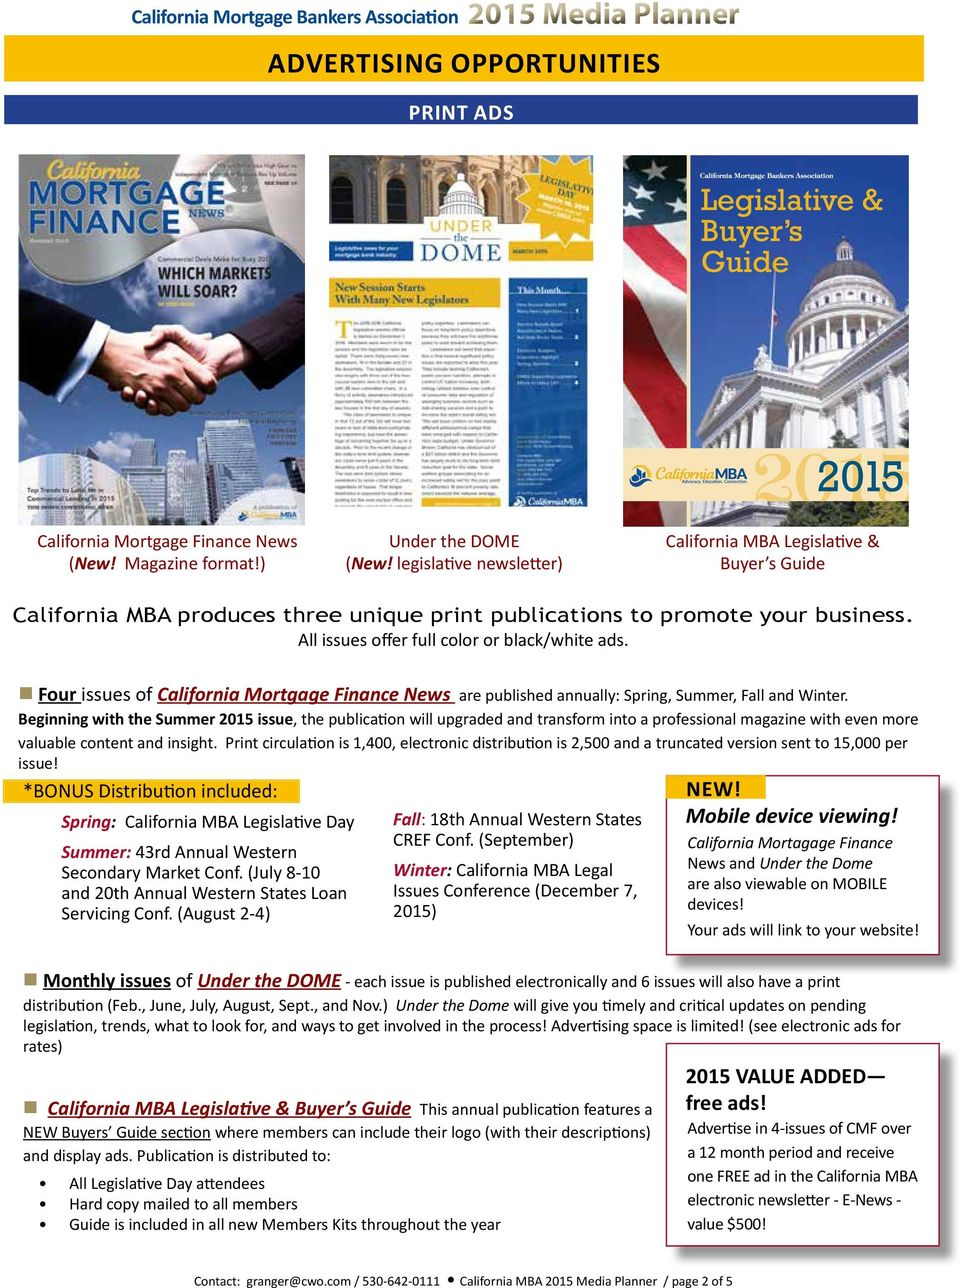 Four issues of California Mortgage Finance News are published annually: Spring, Summer, Fall and Winter.